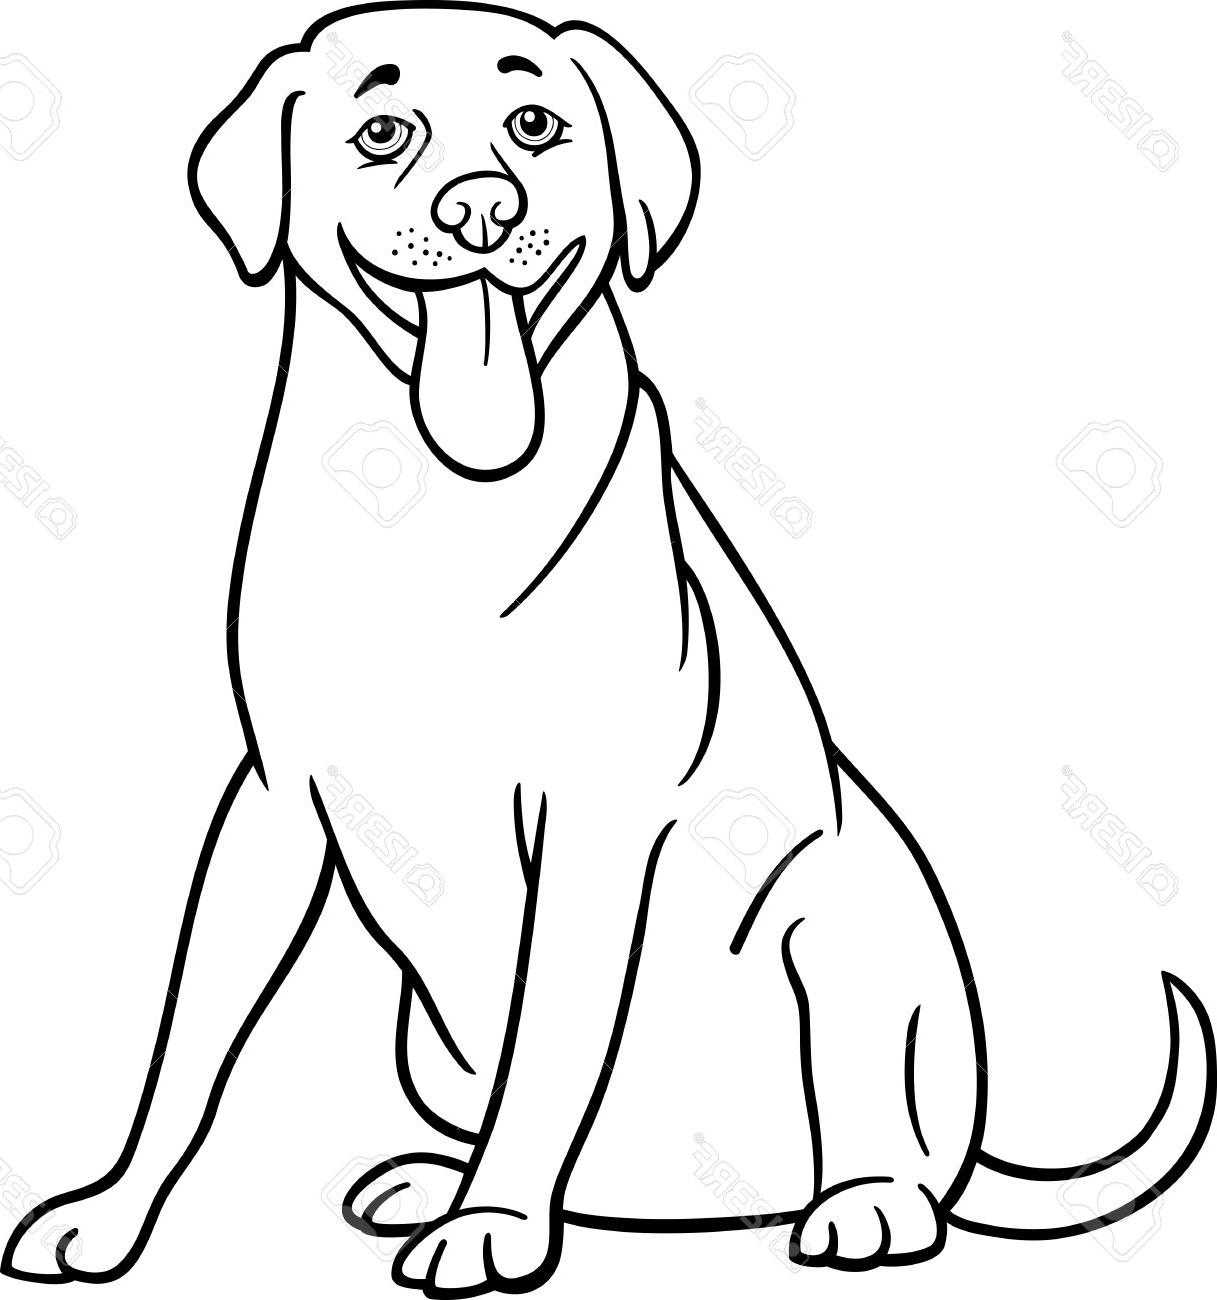 Dog Clipart Black And White-hdclipartall.com-Clip Art1217